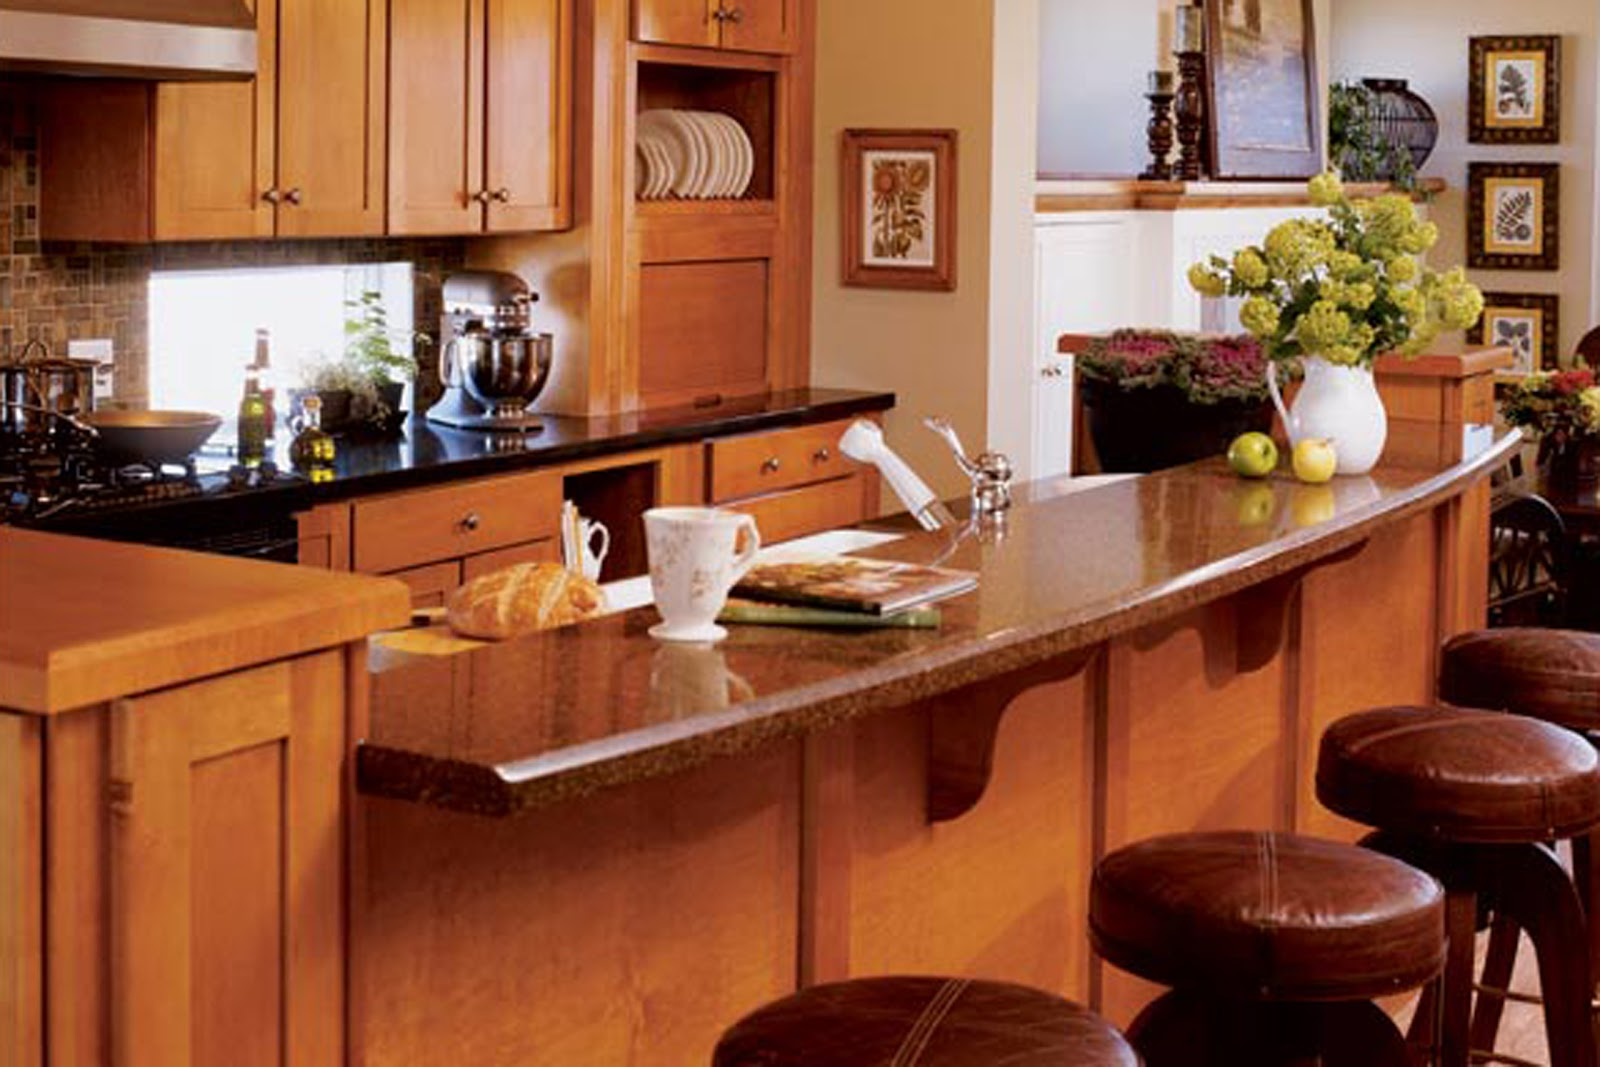 Simply elegant home designs blog home design ideas 3 for Kitchen counter decor